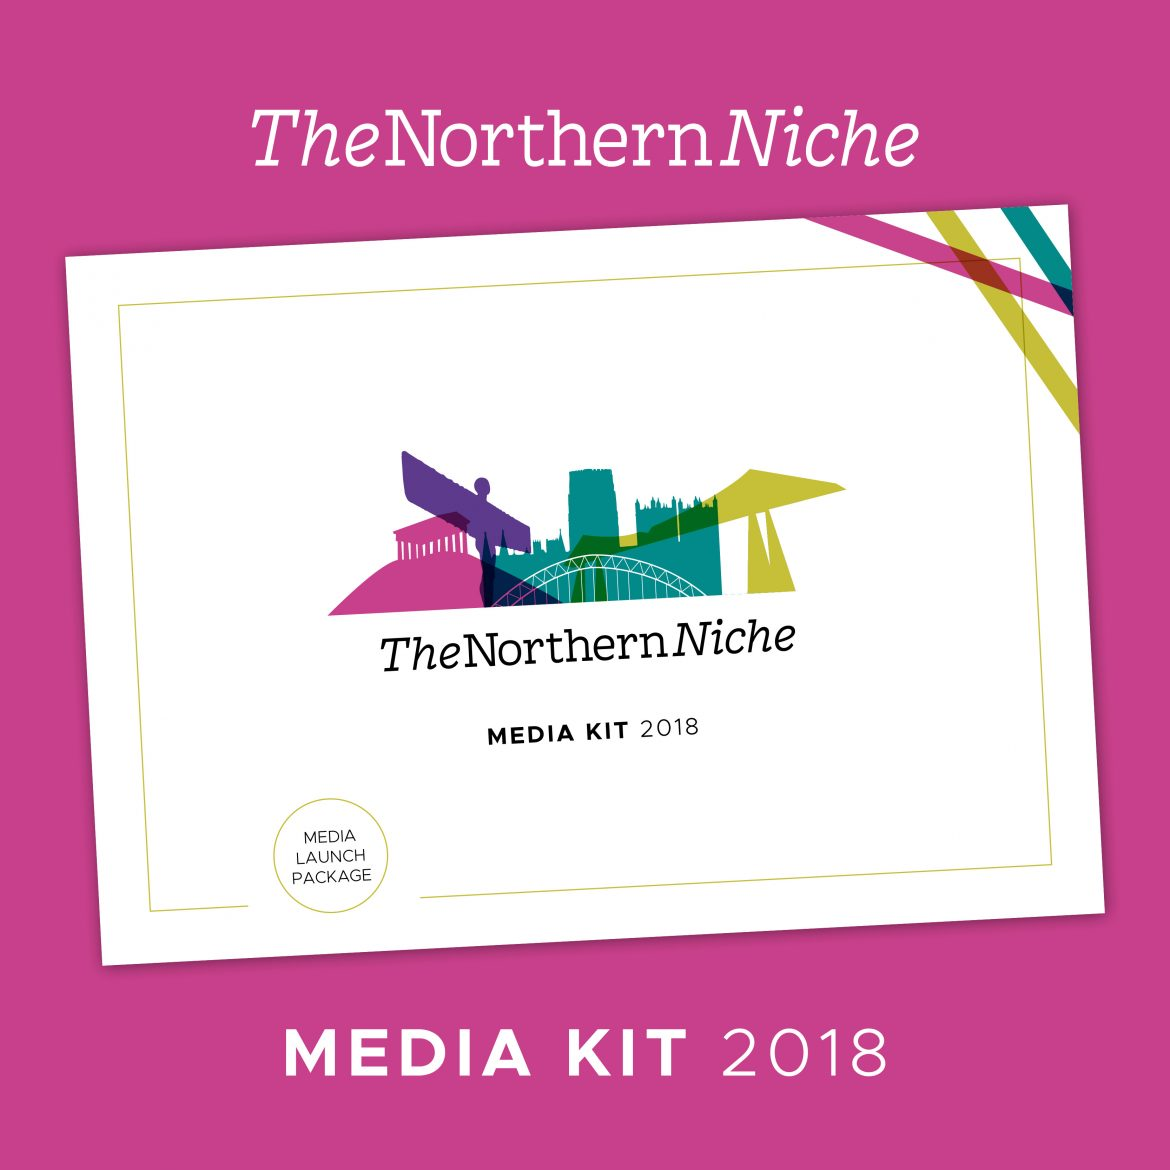 The-Northern-Niche-Media-Kit-Launch